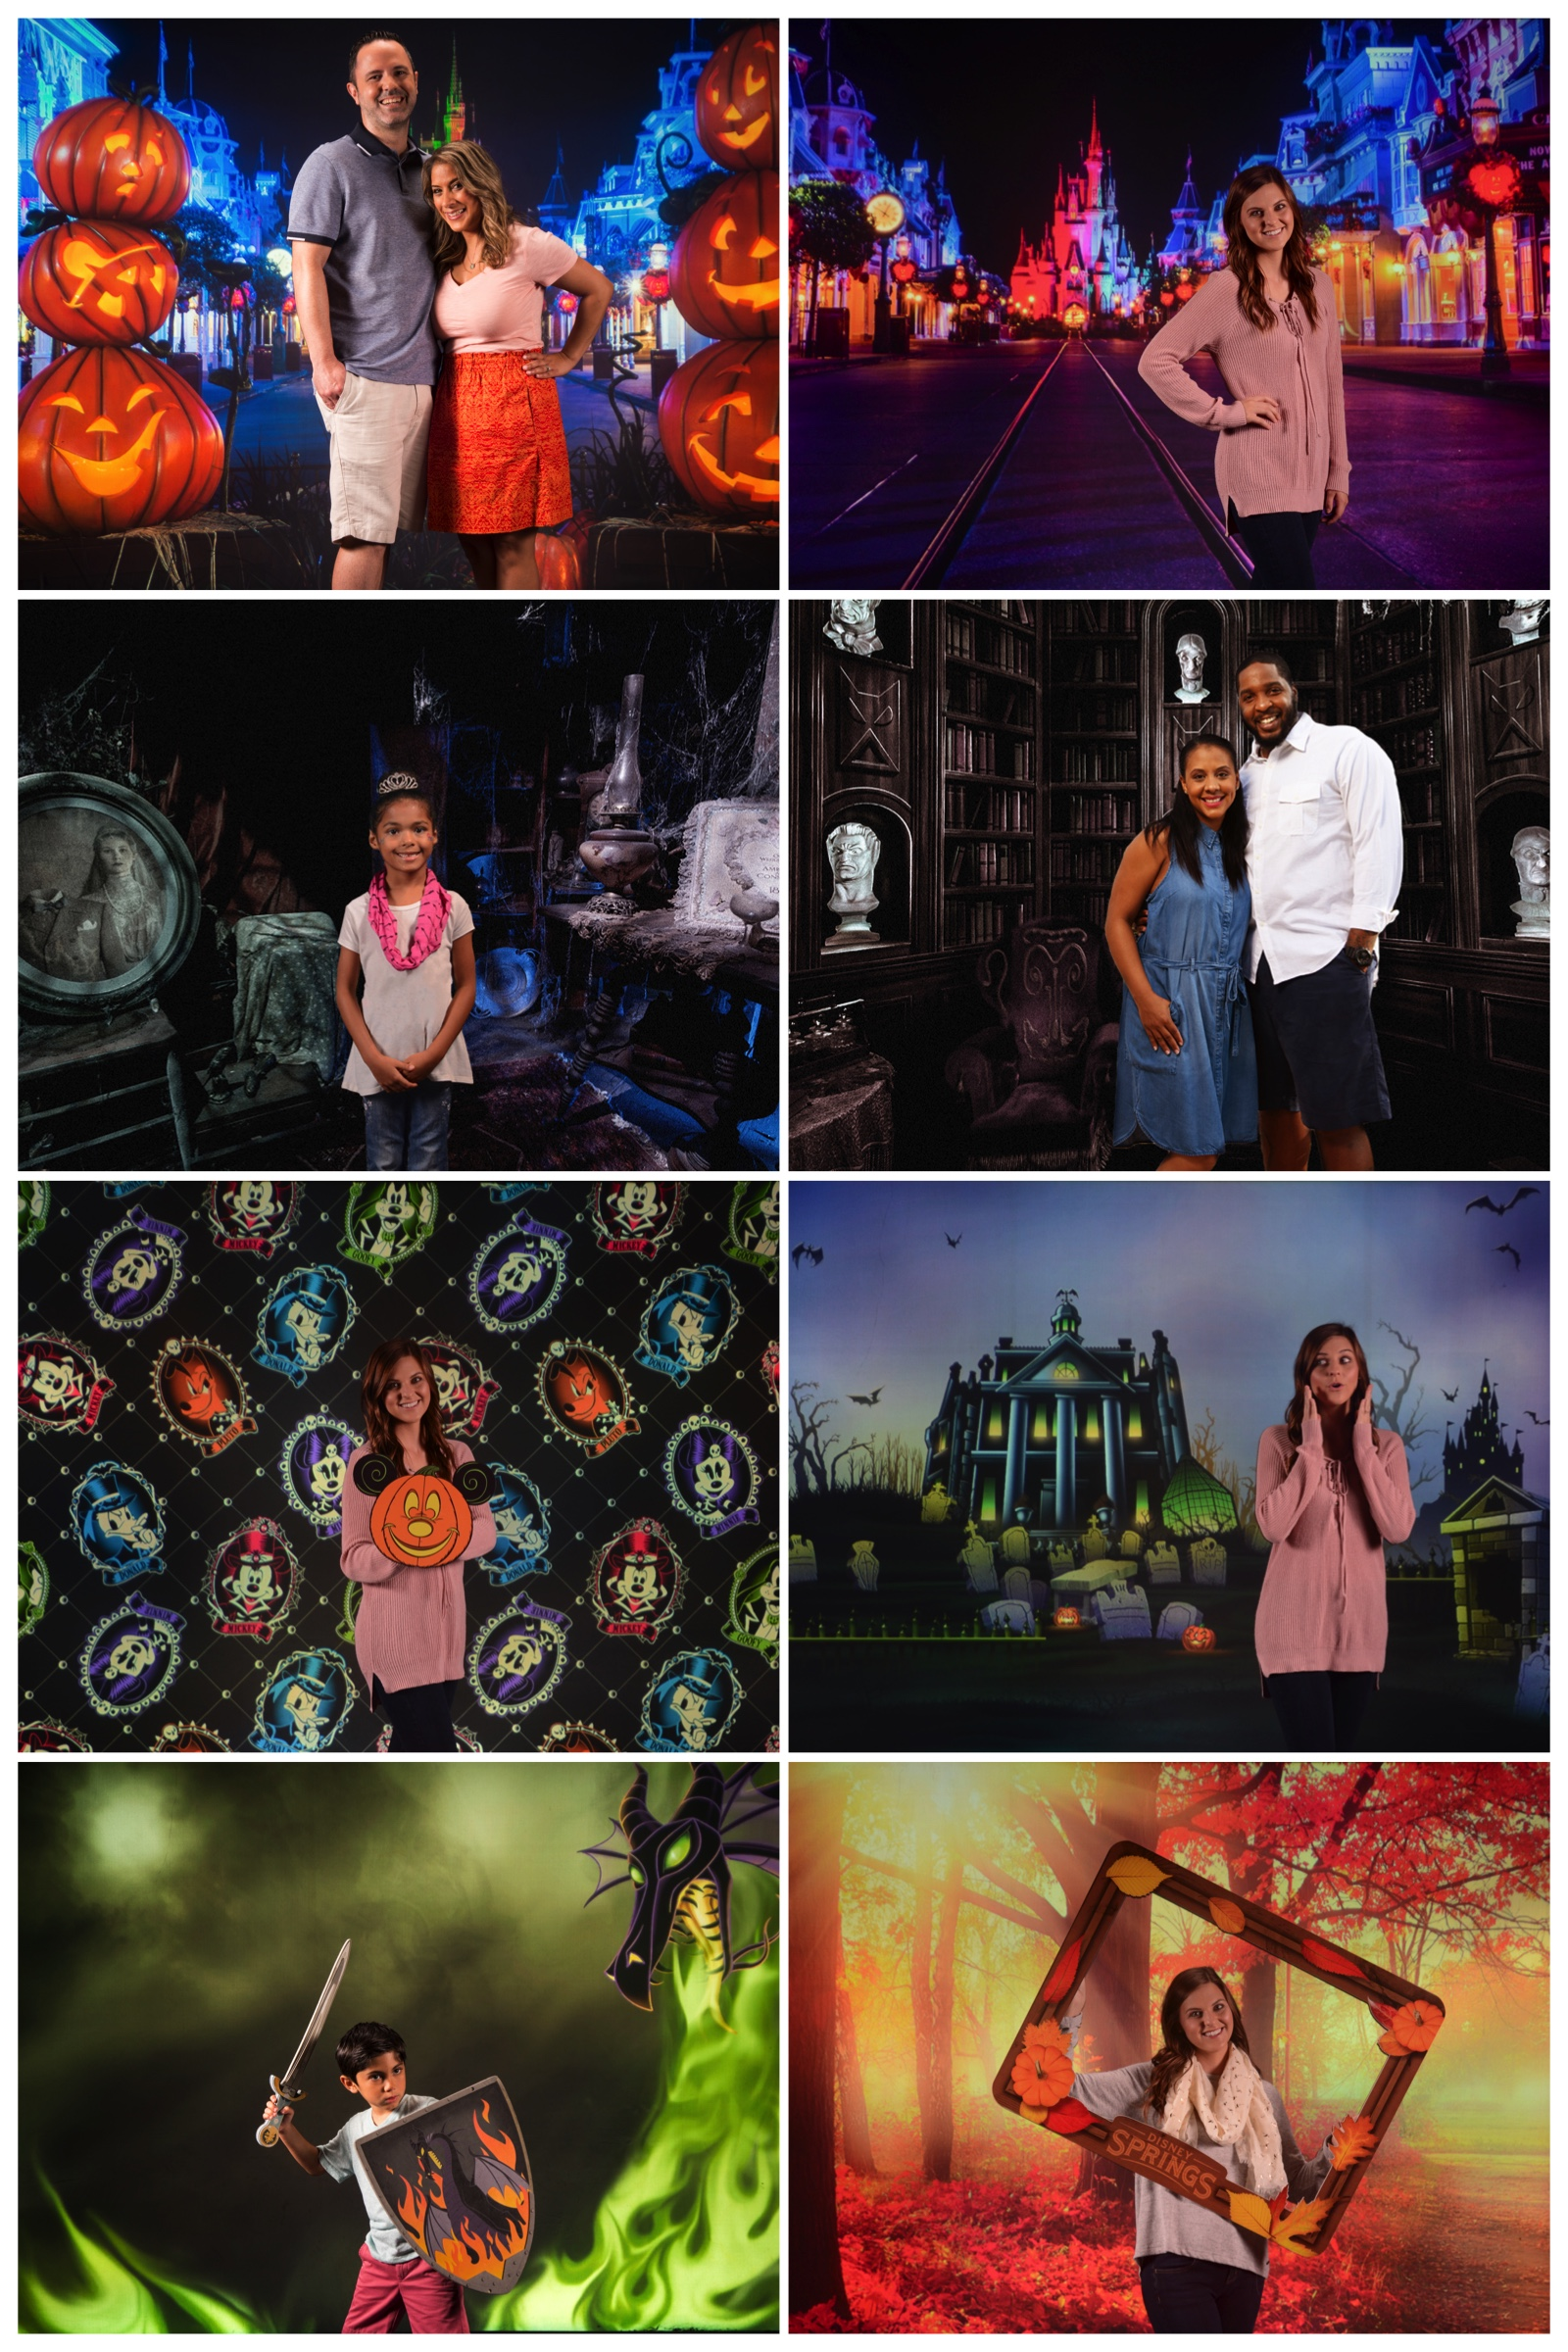 Fall Virtual Backdrops Have Arrived at the Disney PhotoPass Studio at Disney Springs